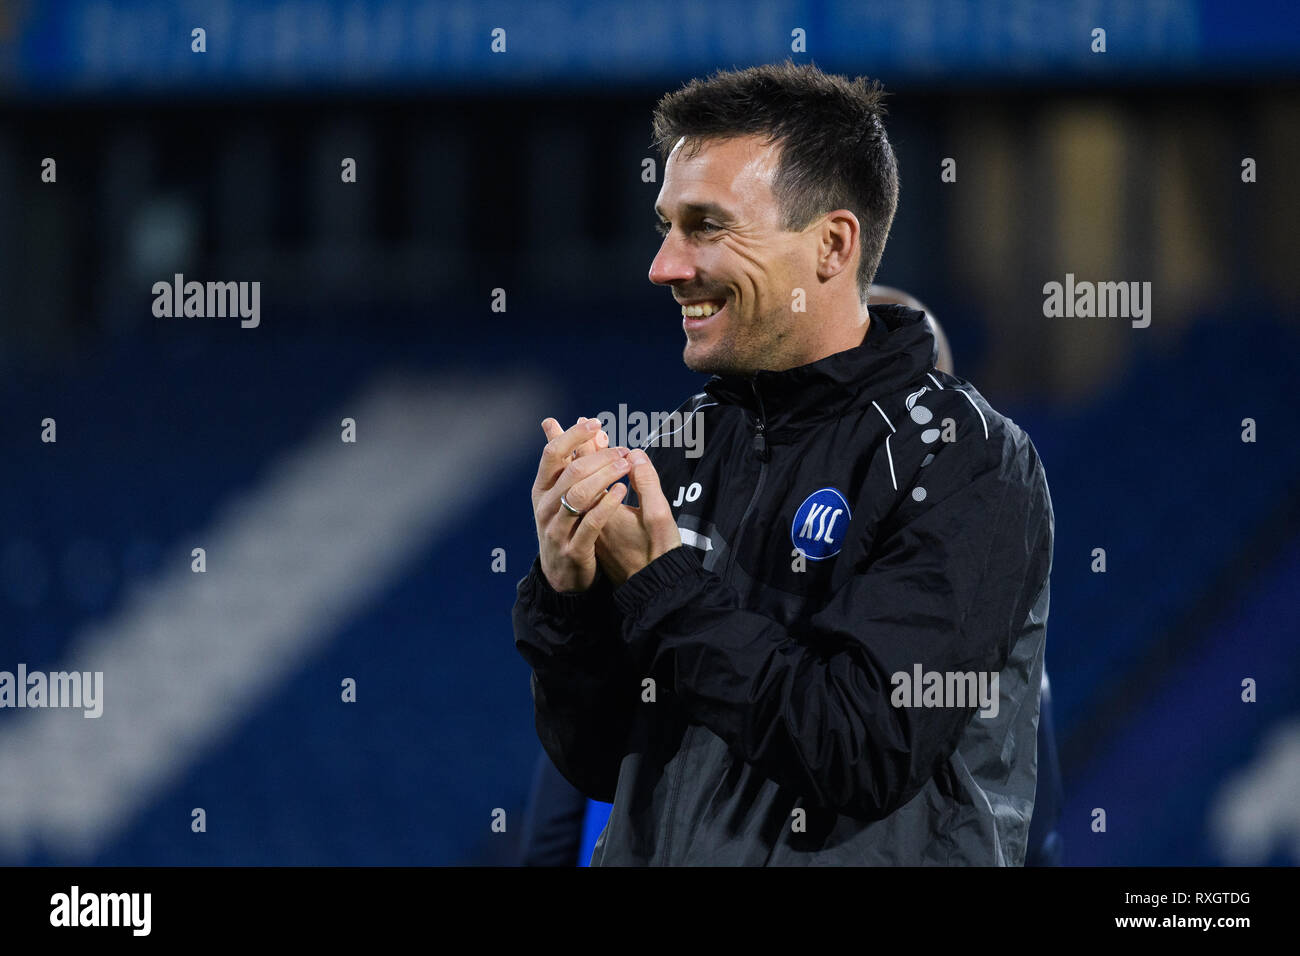 Duisburg, Deutschland. 08th Mar, 2019. Christian Eichner (KSC Co coach). GES/football/3rd league: Krefelder football club Uerdingen - Karlsruher SC, 08.03.2019 Football/Soccer: 3rd League: KFC Uerdingen vs Karlsruher SC, Duisburg, March 8, 2019 | usage worldwide Credit: dpa/Alamy Live News - Stock Image